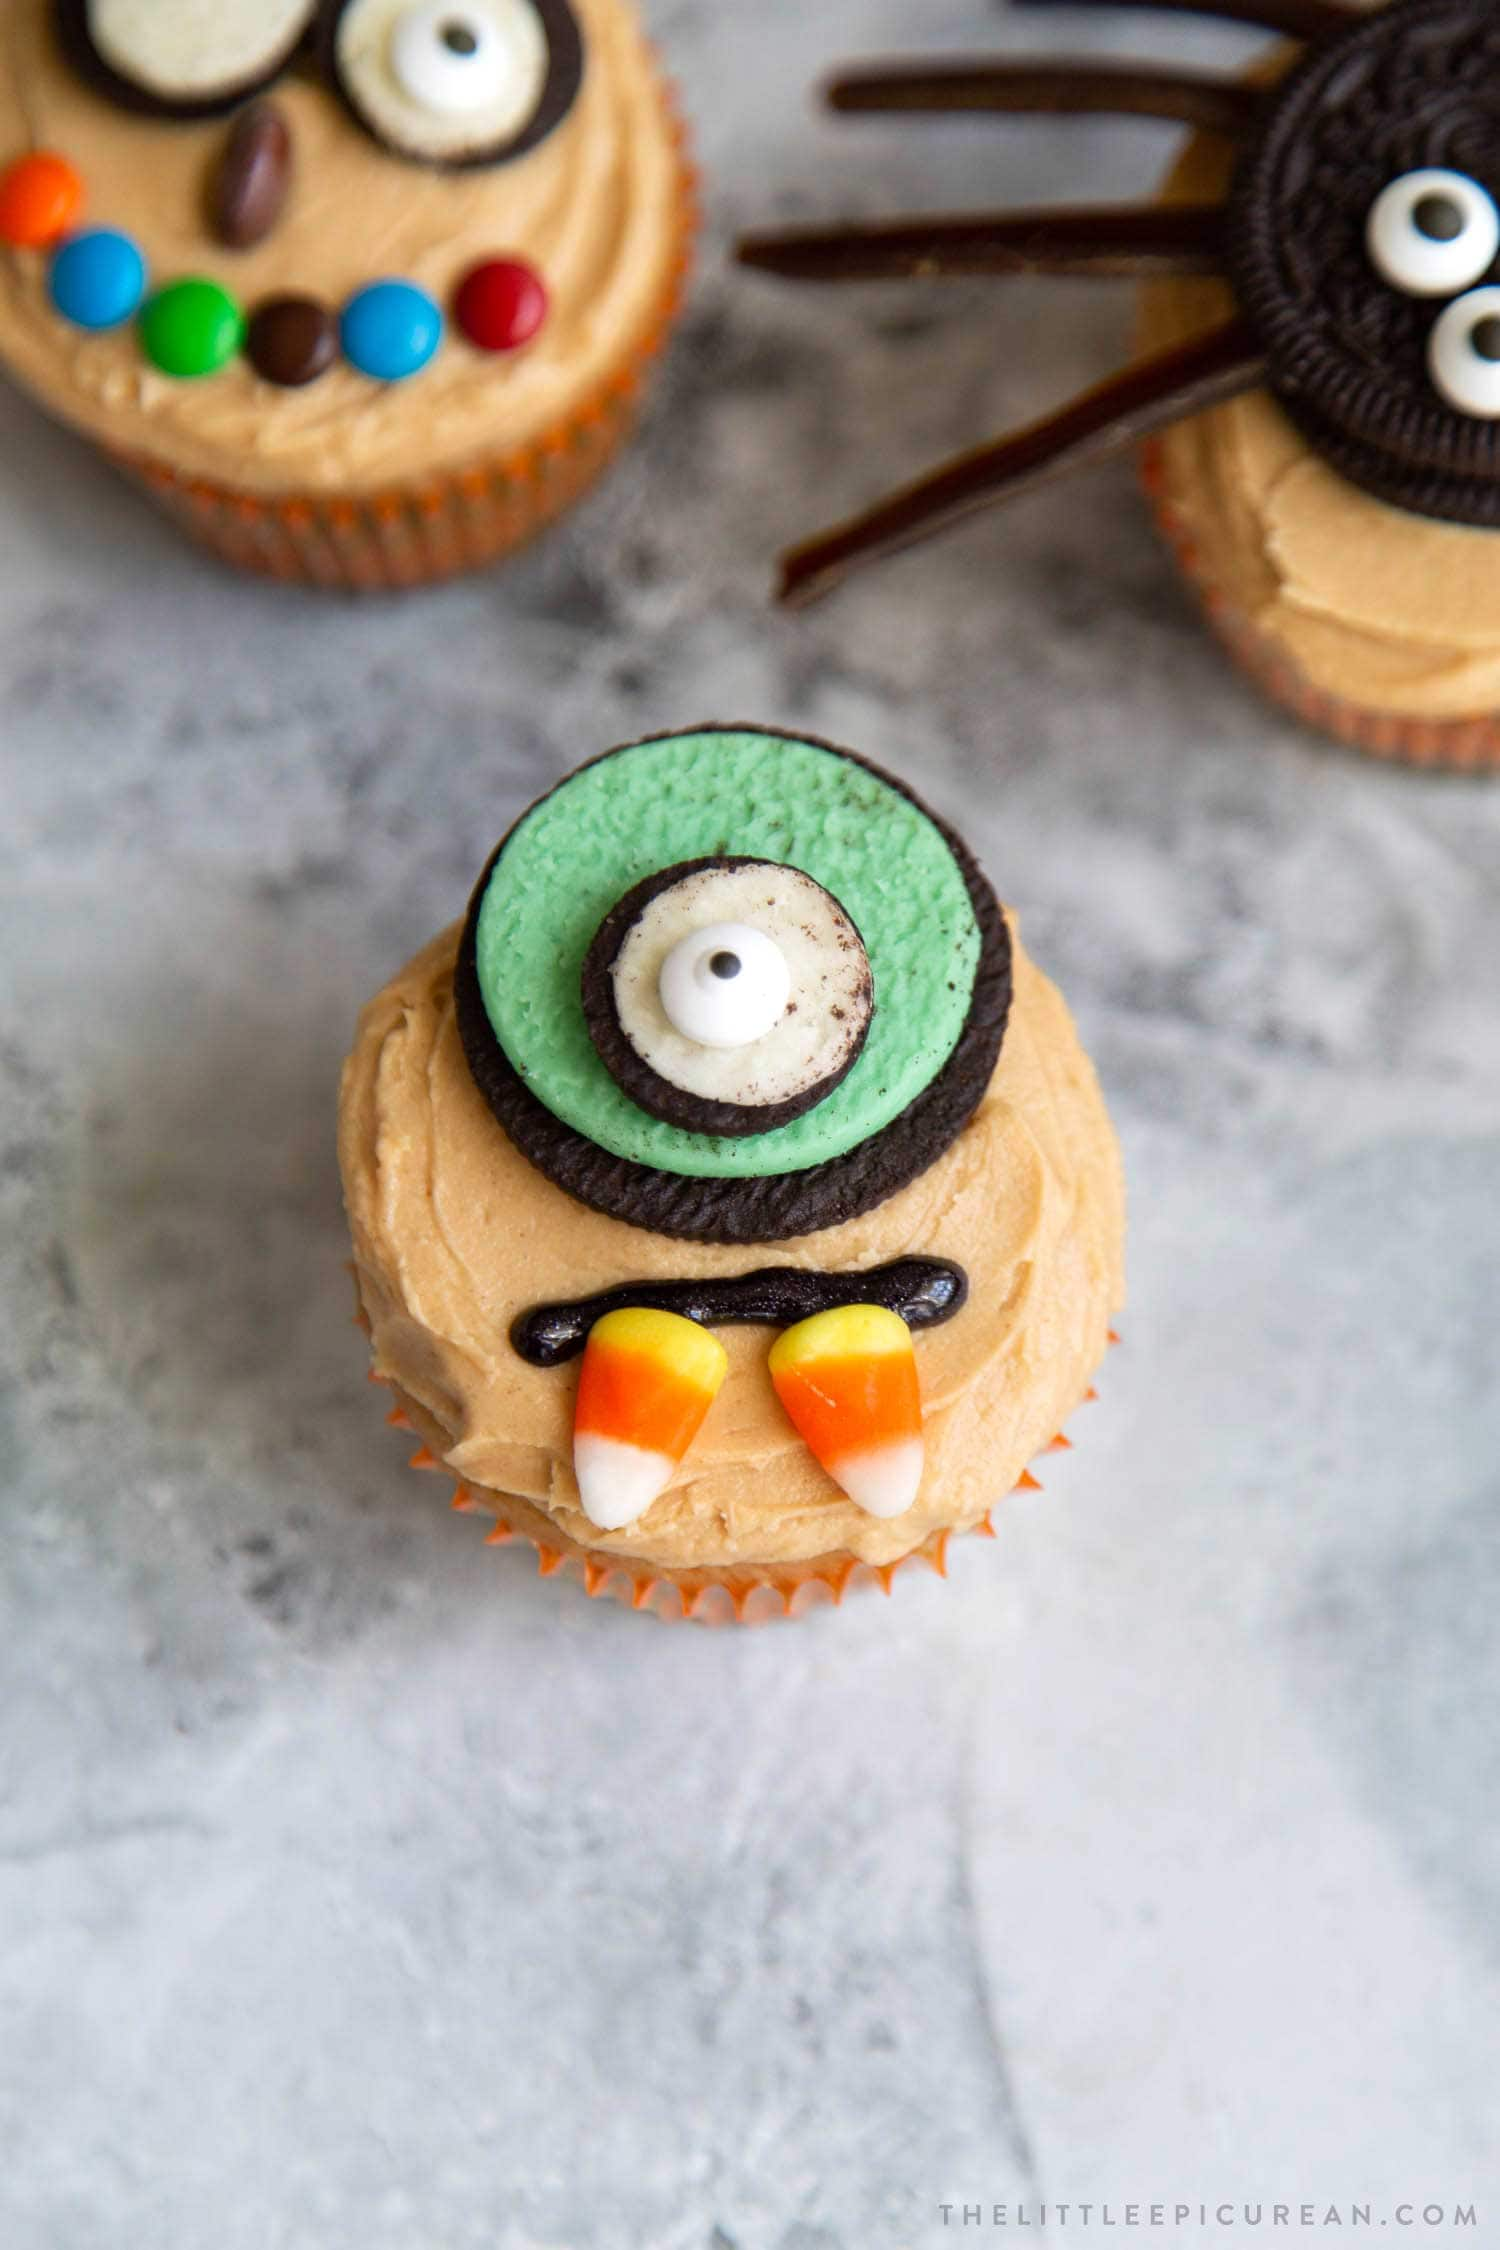 One Eyed Monster Cupcake. Easy to decorate Halloween cupcakes using store-bought candies. This post contains 10 decor ideas!